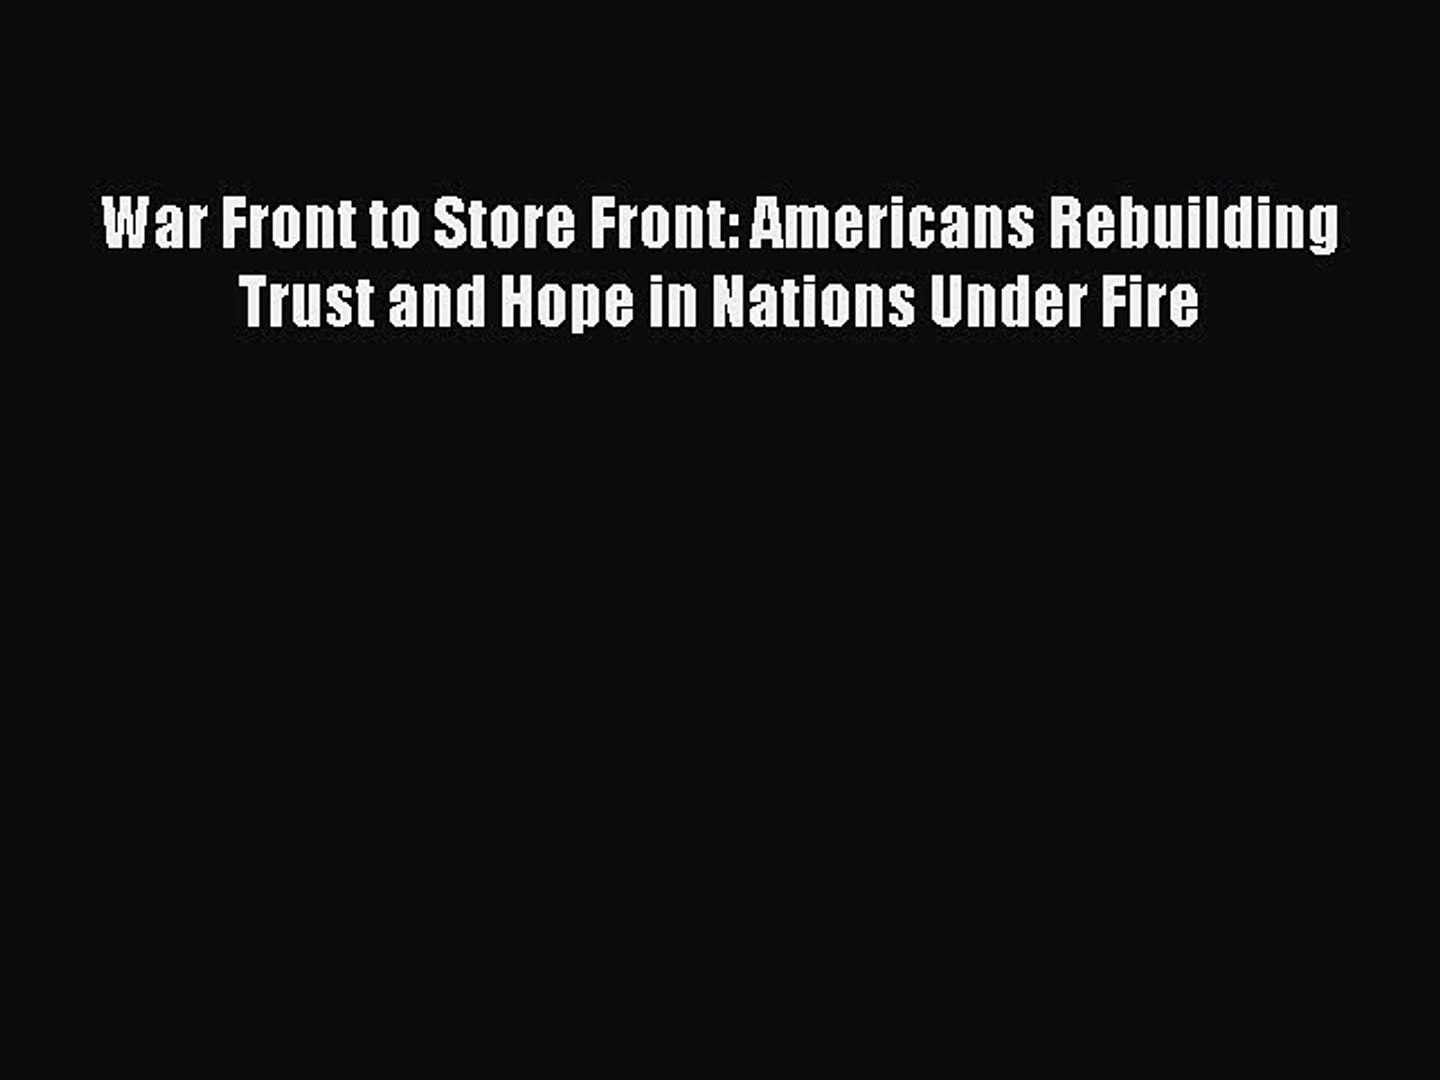 DOWNLOAD FREE E-books  War Front to Store Front: Americans Rebuilding Trust and Hope in Nations